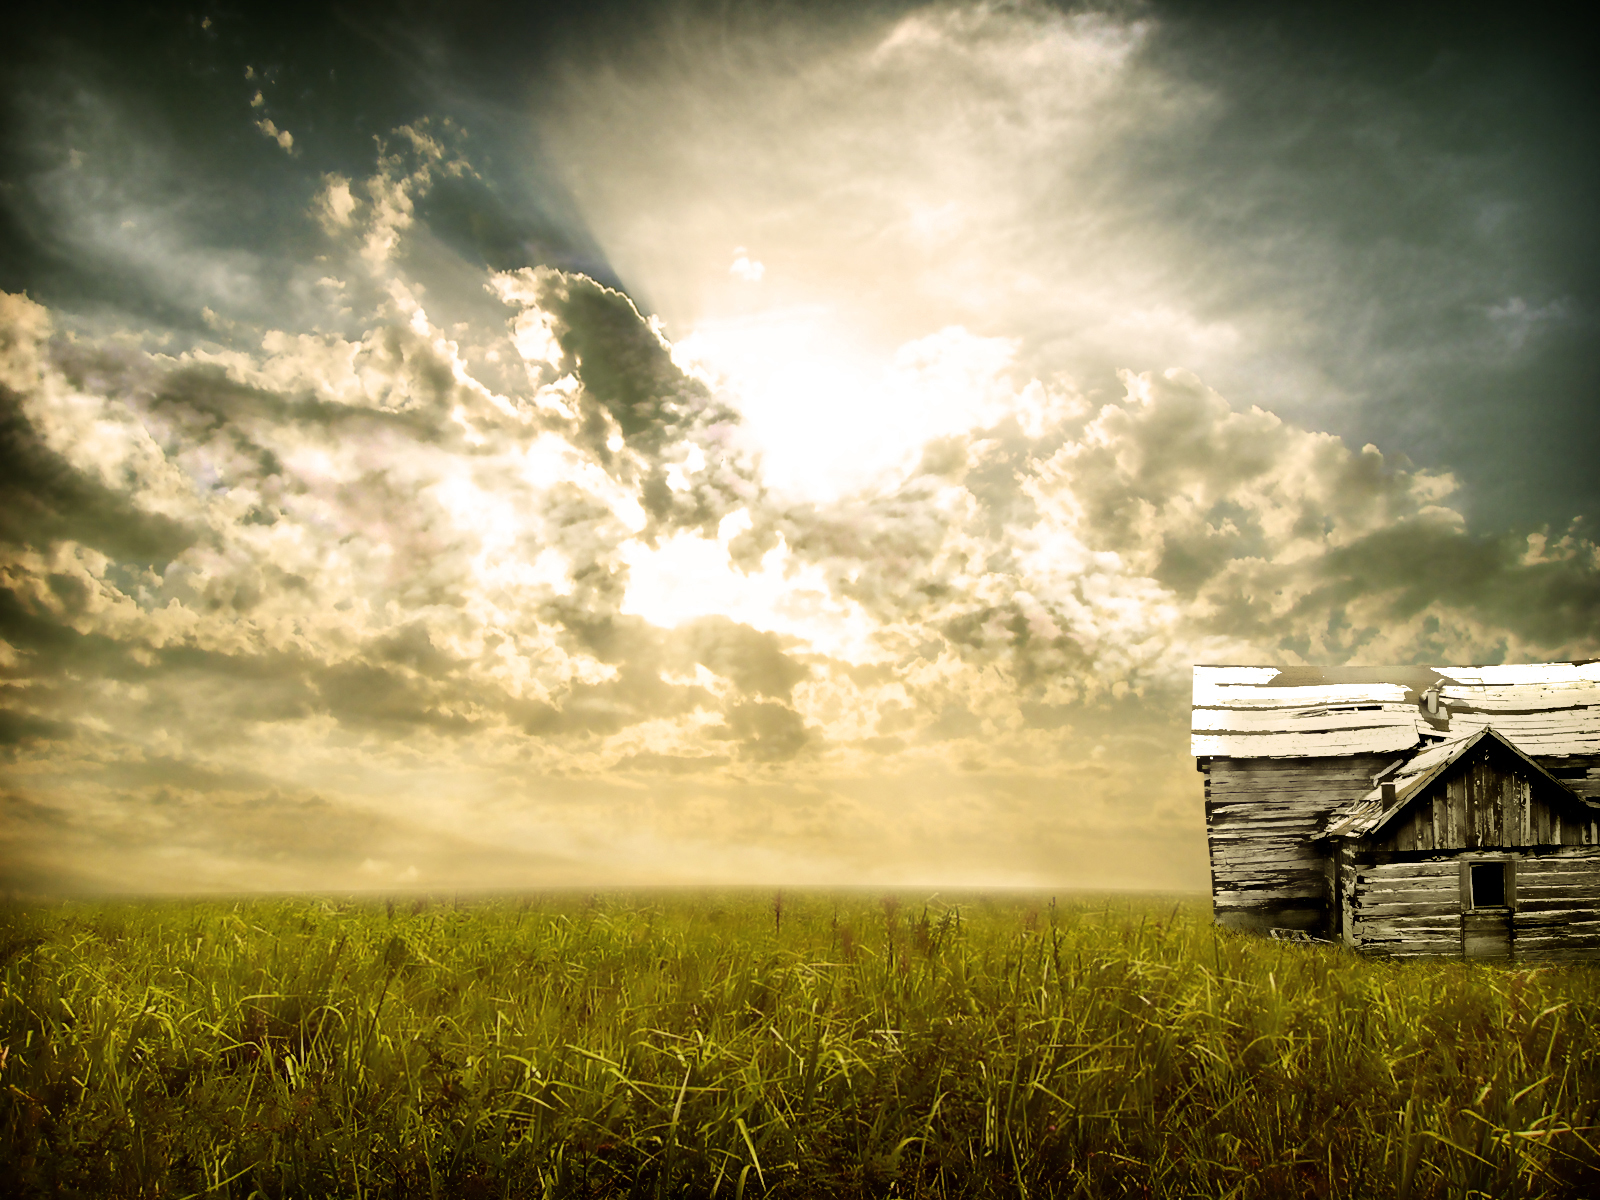 Field with abandoned house by dobee